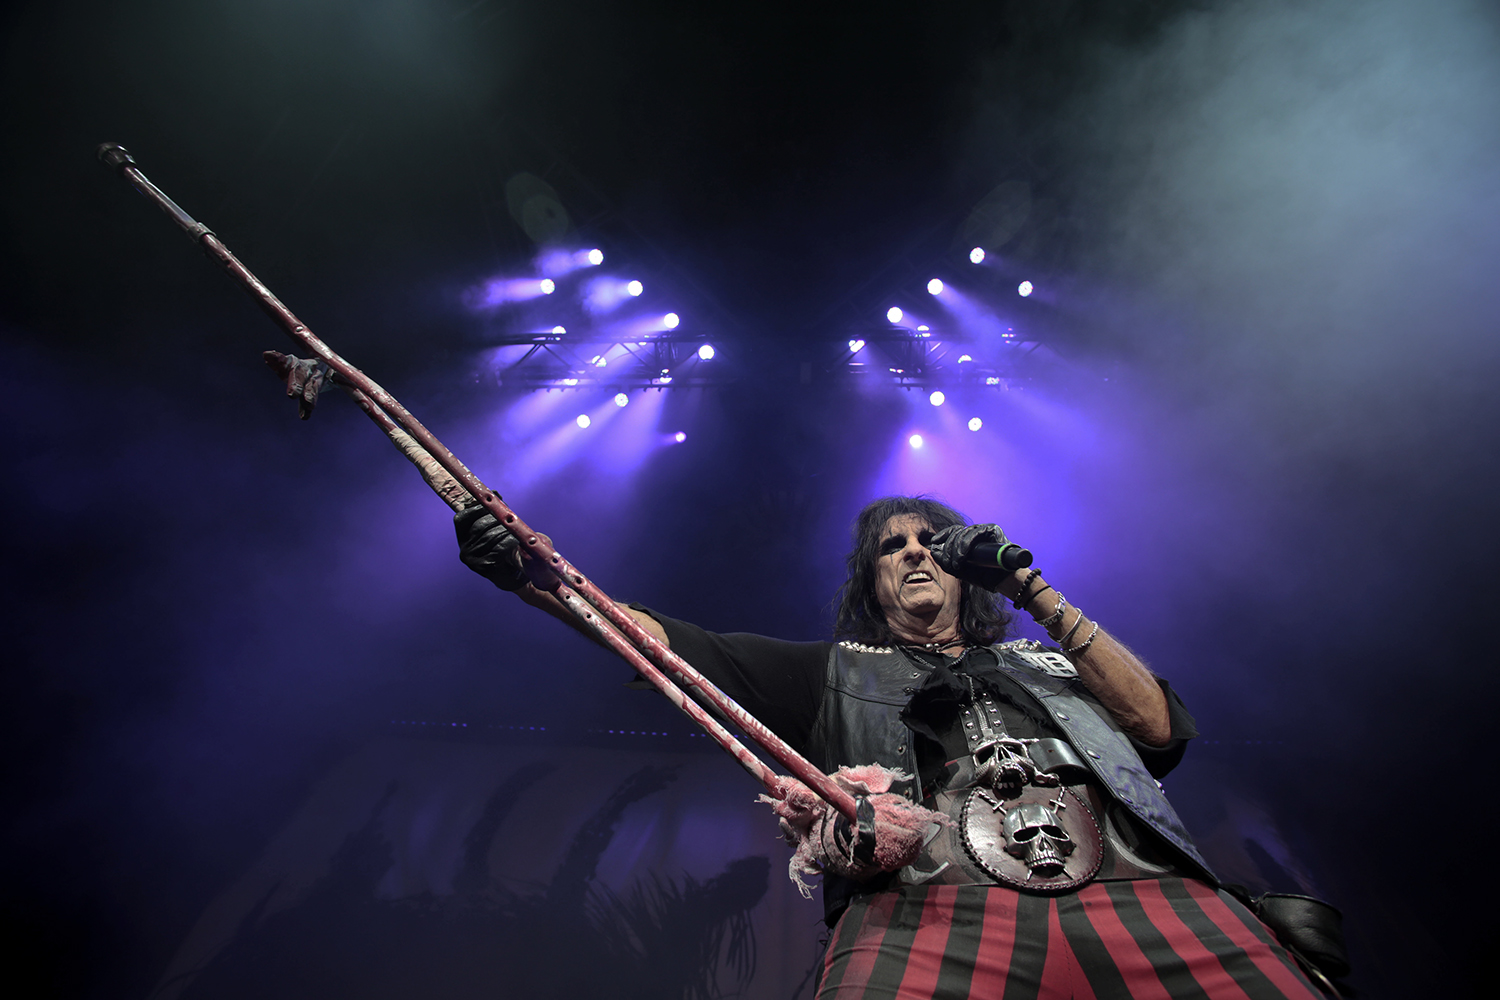 Alice Cooper performs at the Mötley Crüe Final Tour on Saturday, Aug. 9, 2014 at DTE Energy Music Theatre in Clarkston. Tim Galloway/Special to DFP